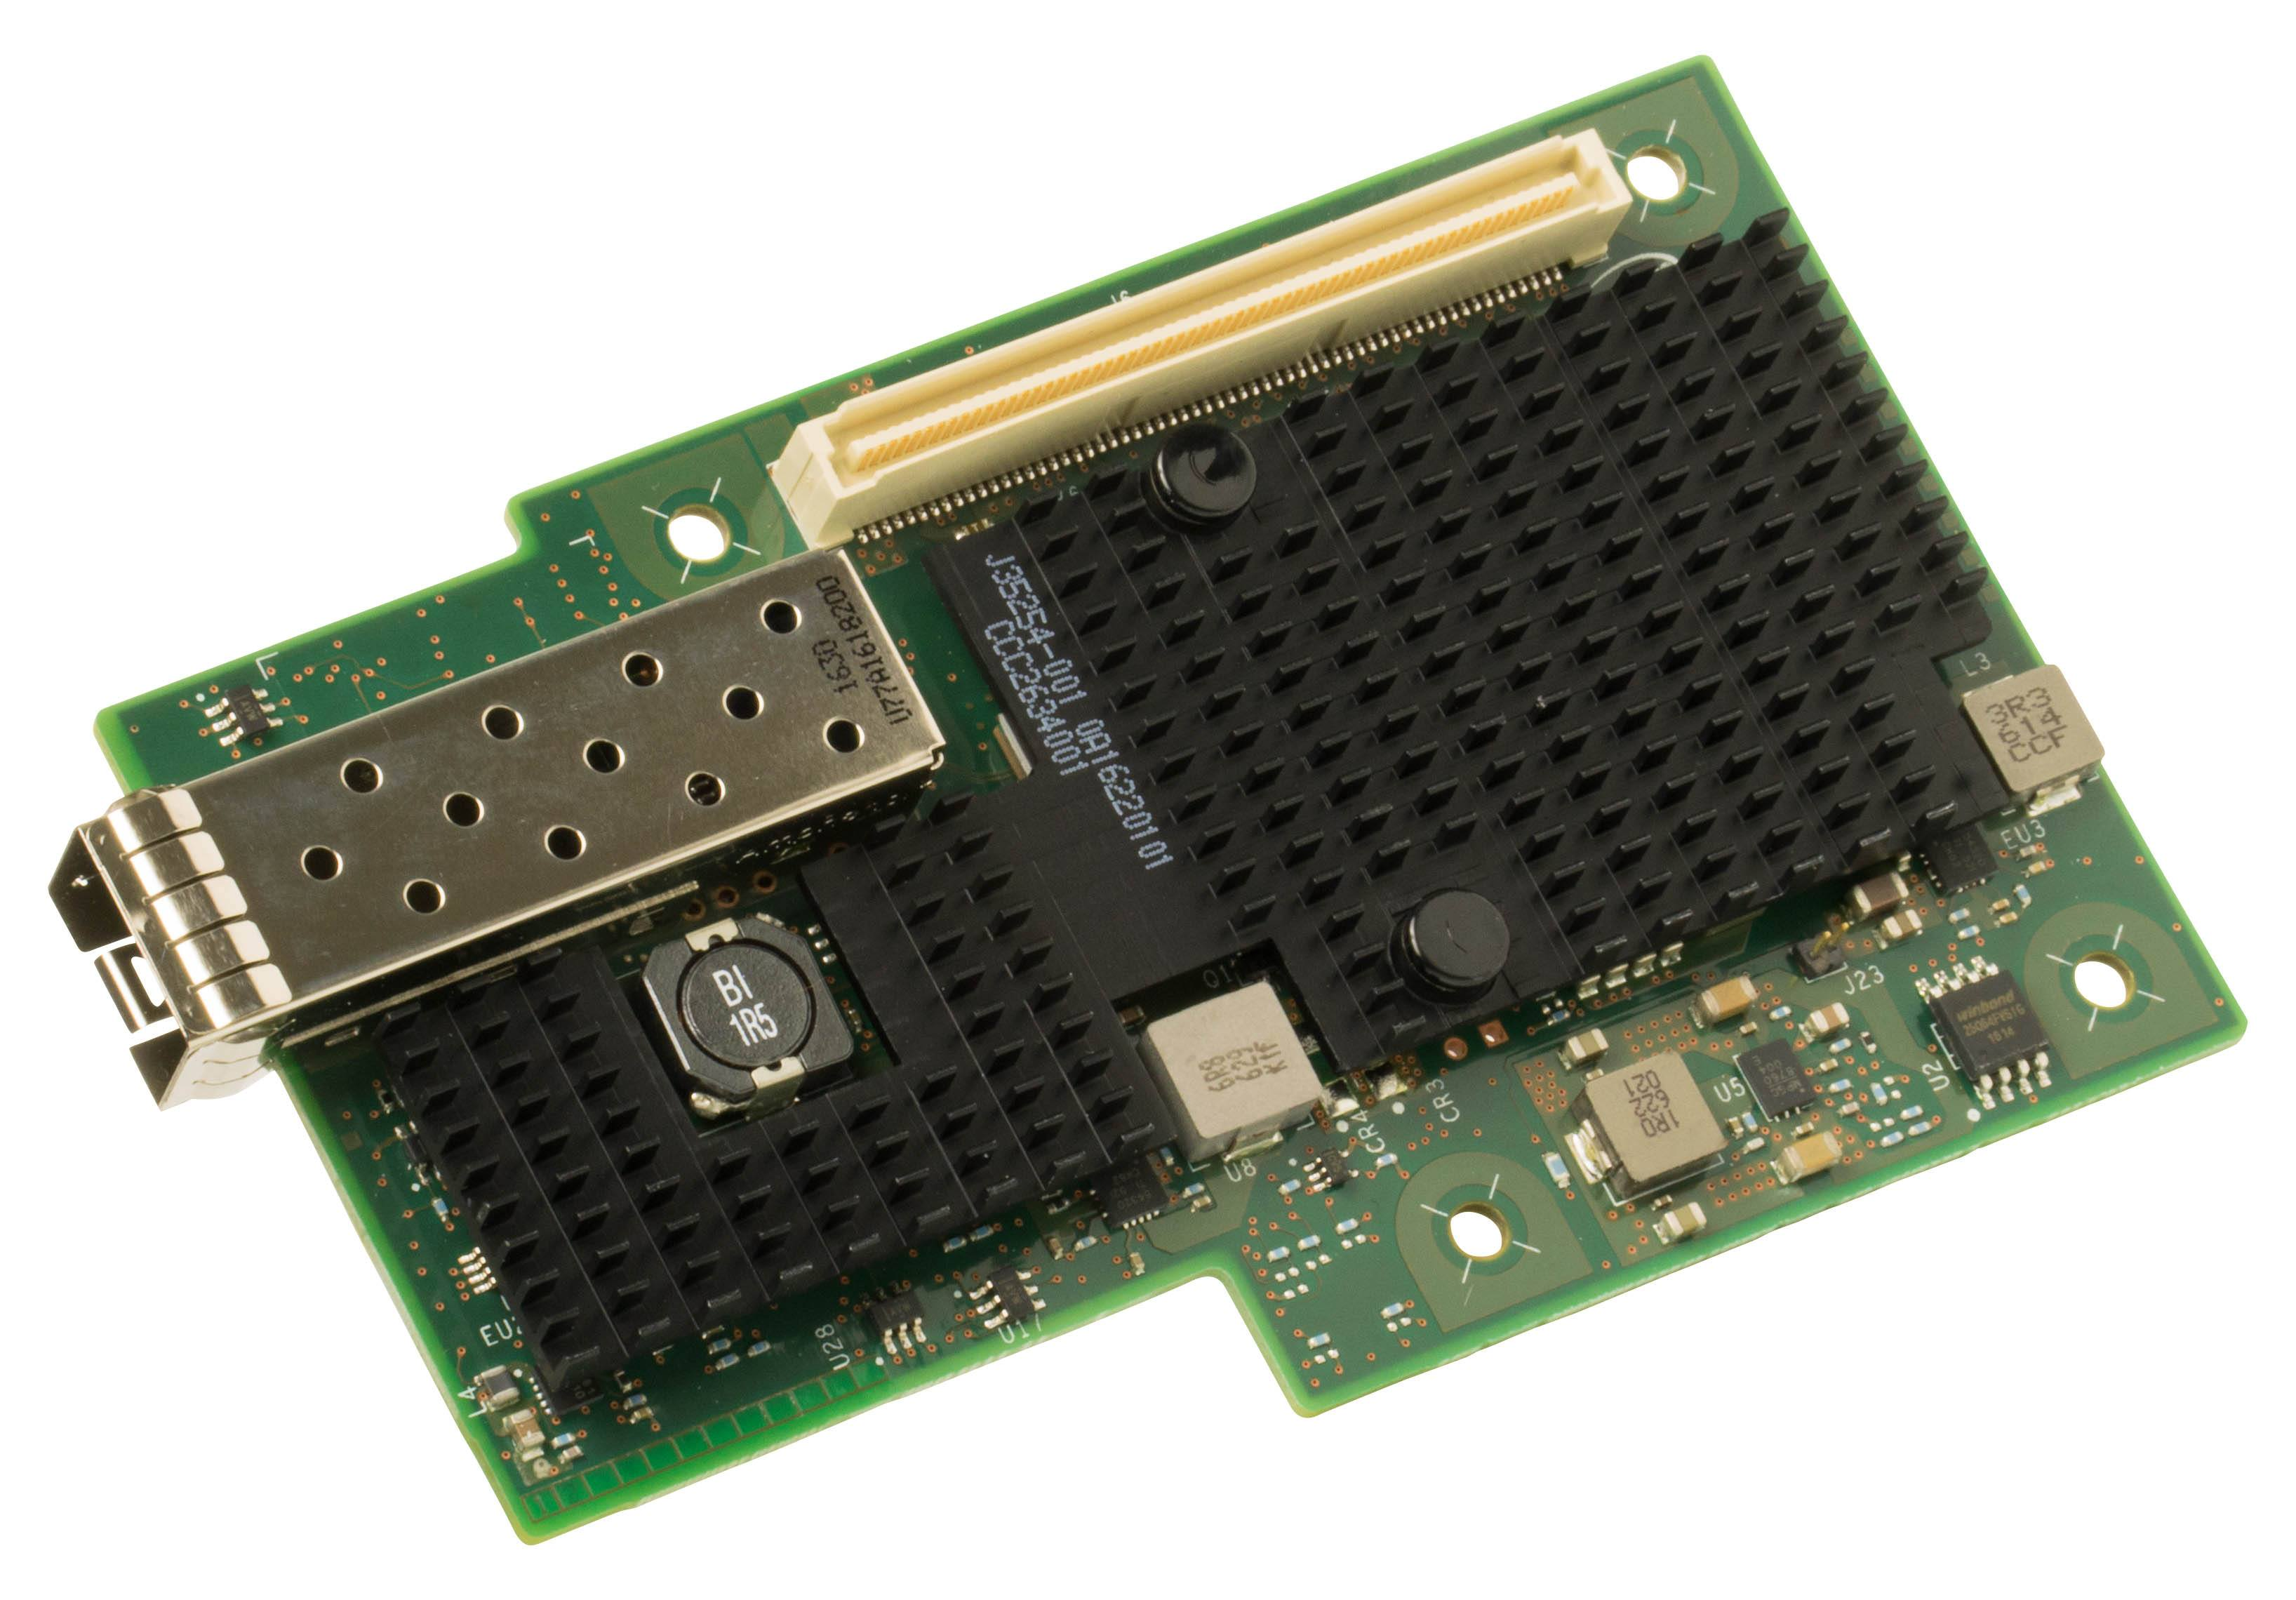 Intel Ethernet Network Adapter XXV710 supports 25 GbE to provide a natural upgrade migration path from 10 GbE for those who need more bandwidth at a lower cost point than 40 GbE. (Credit: Intel Corporation)